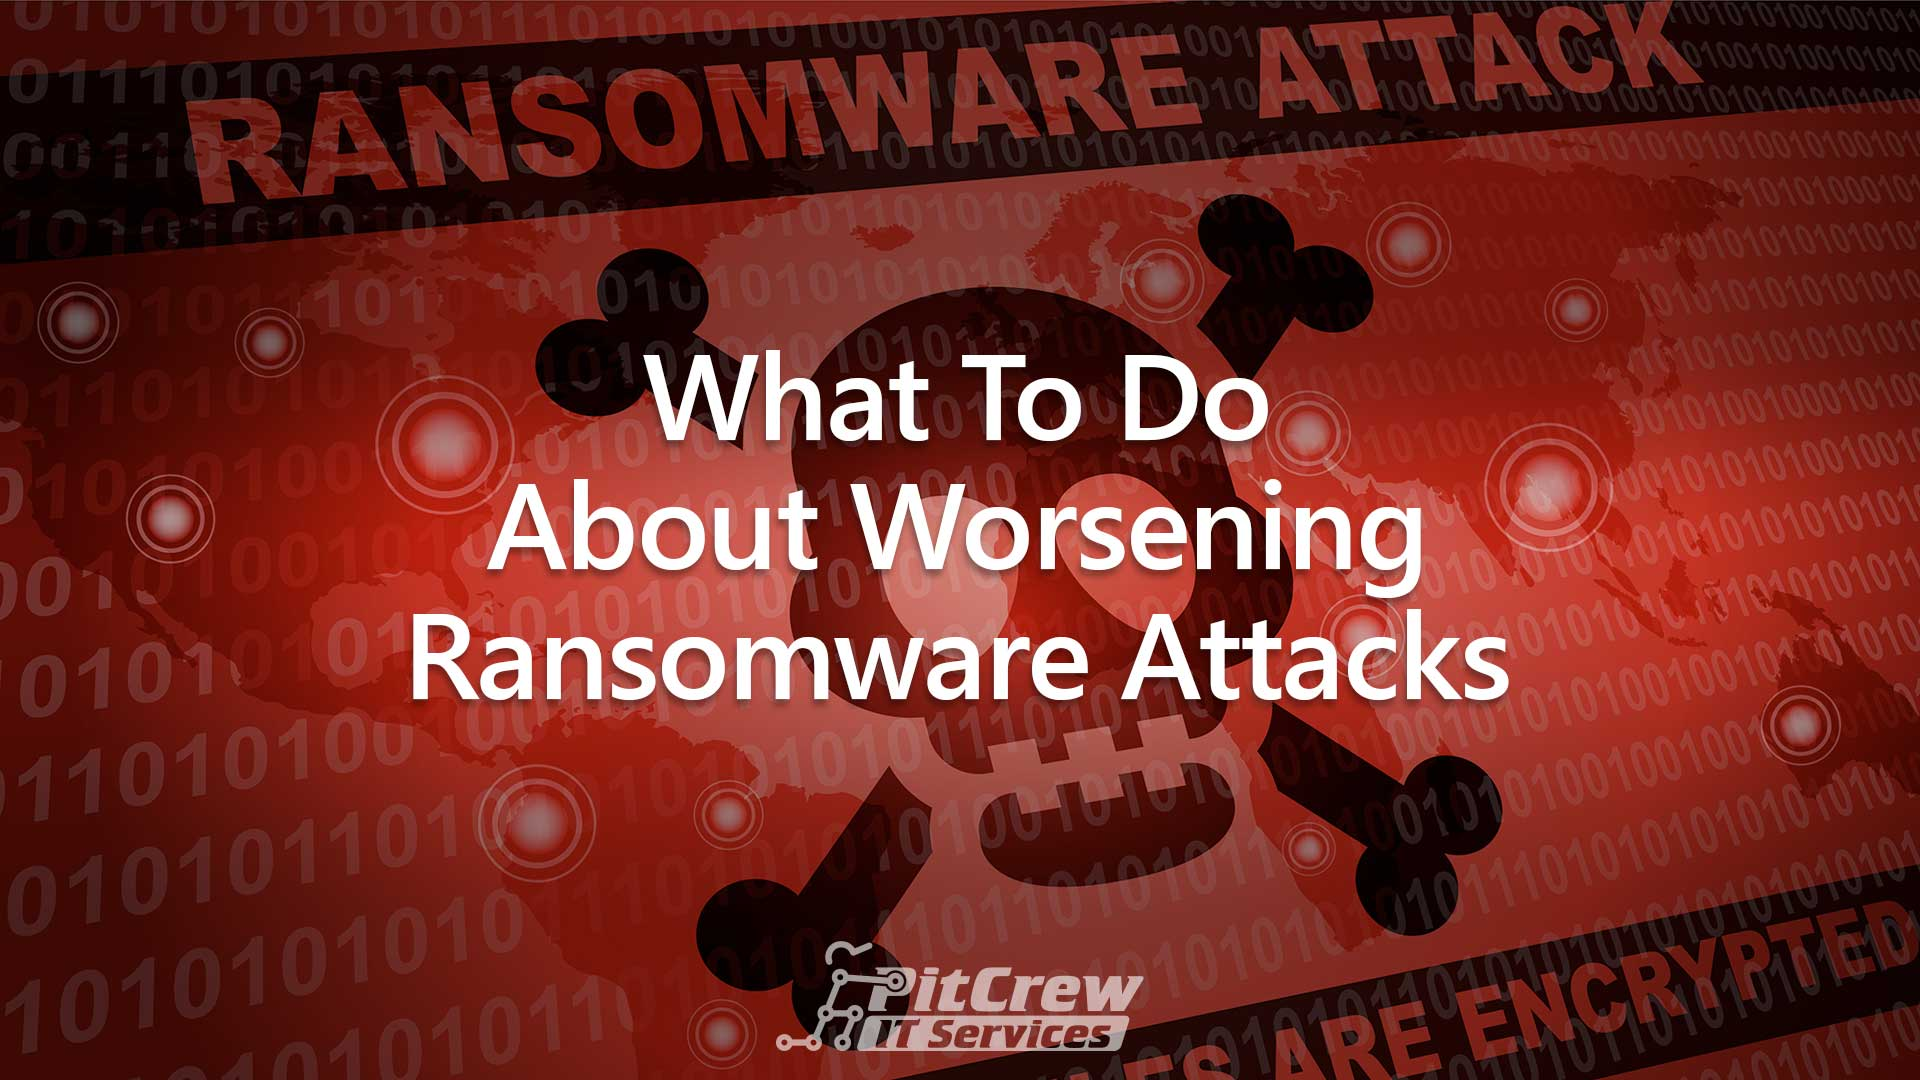 What To Do About Worsening Ransomware Attacks